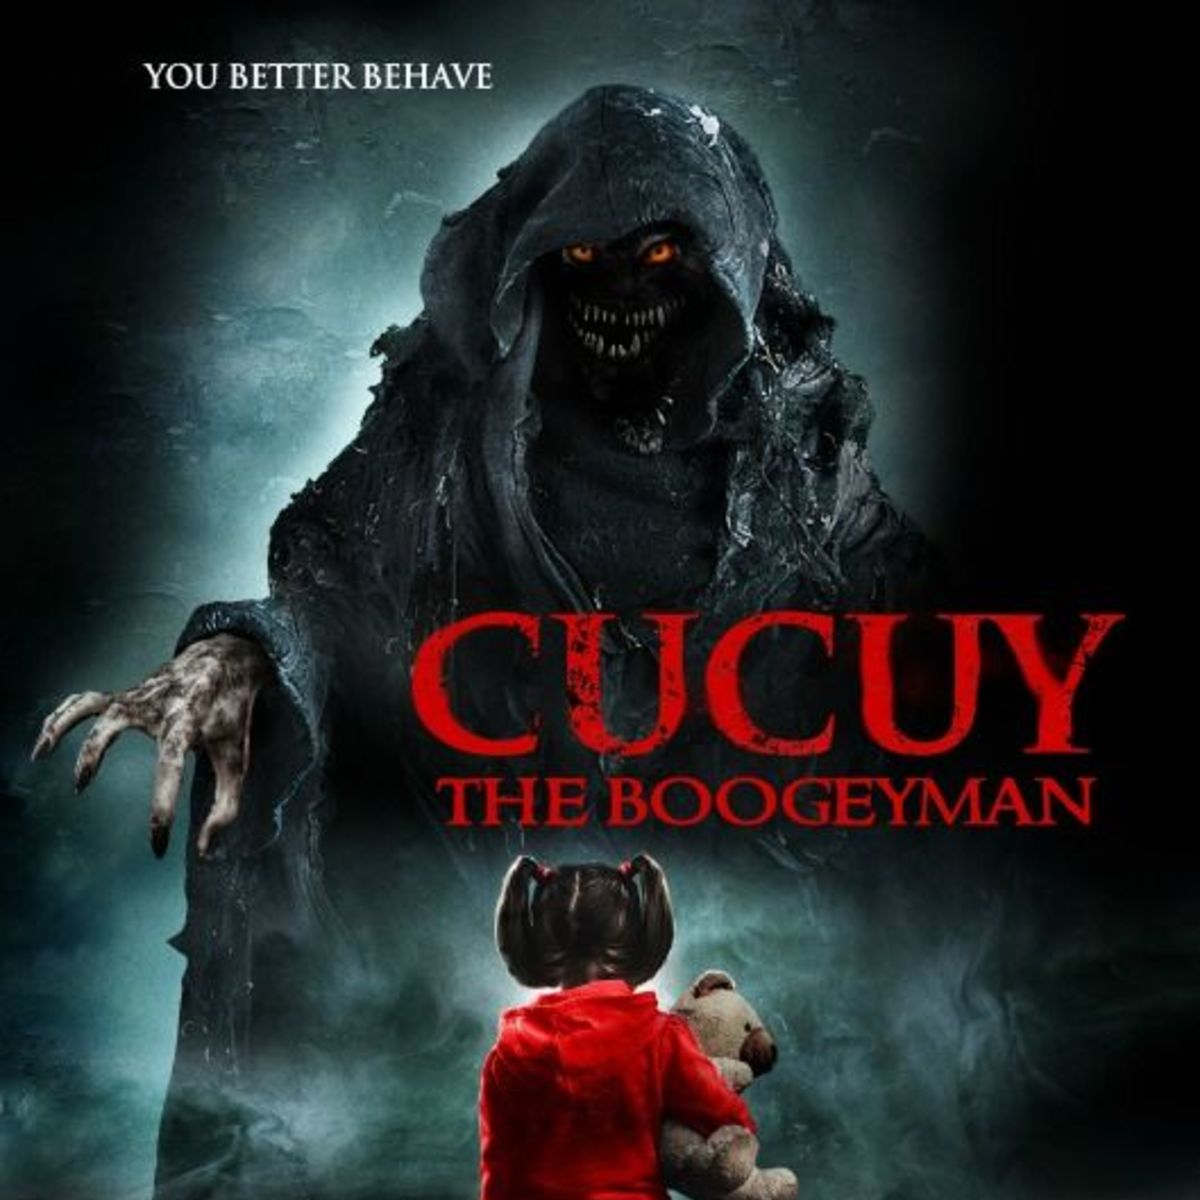 cucuy_poster_final_smaller_file.jpg